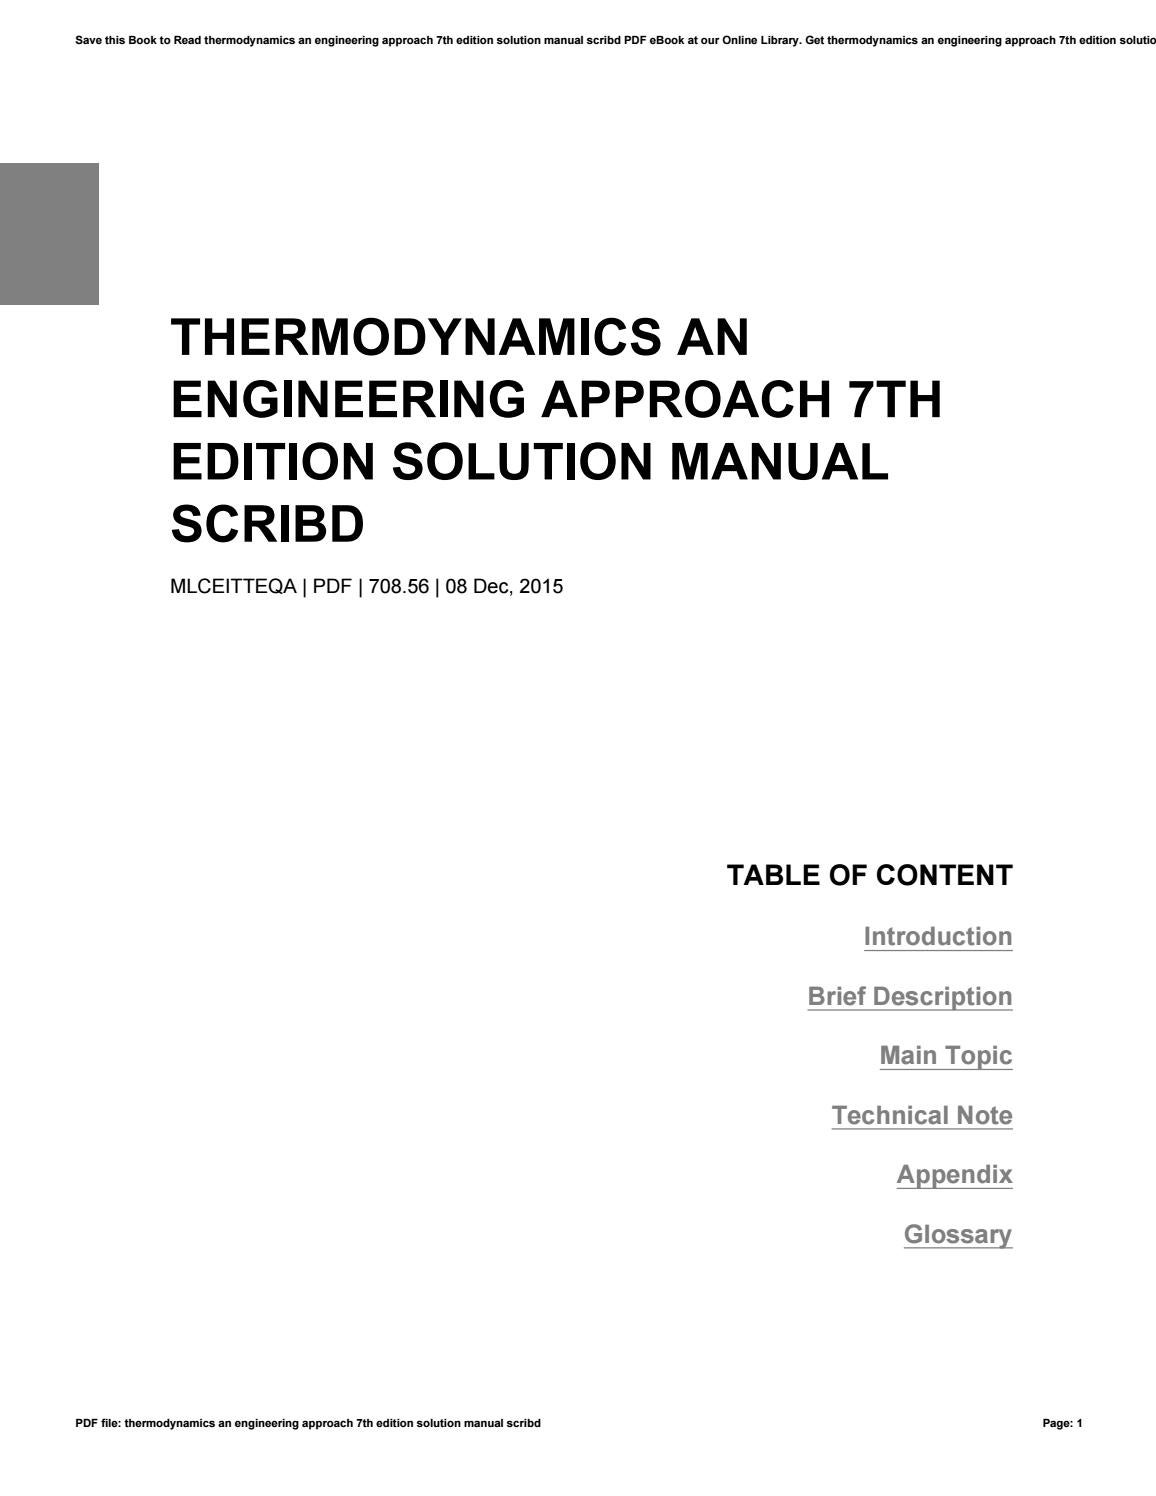 thermodynamics an engineering approach 7th edition solution manual rh issuu  com solution manual introduction to the thermodynamics of materials solution  ...